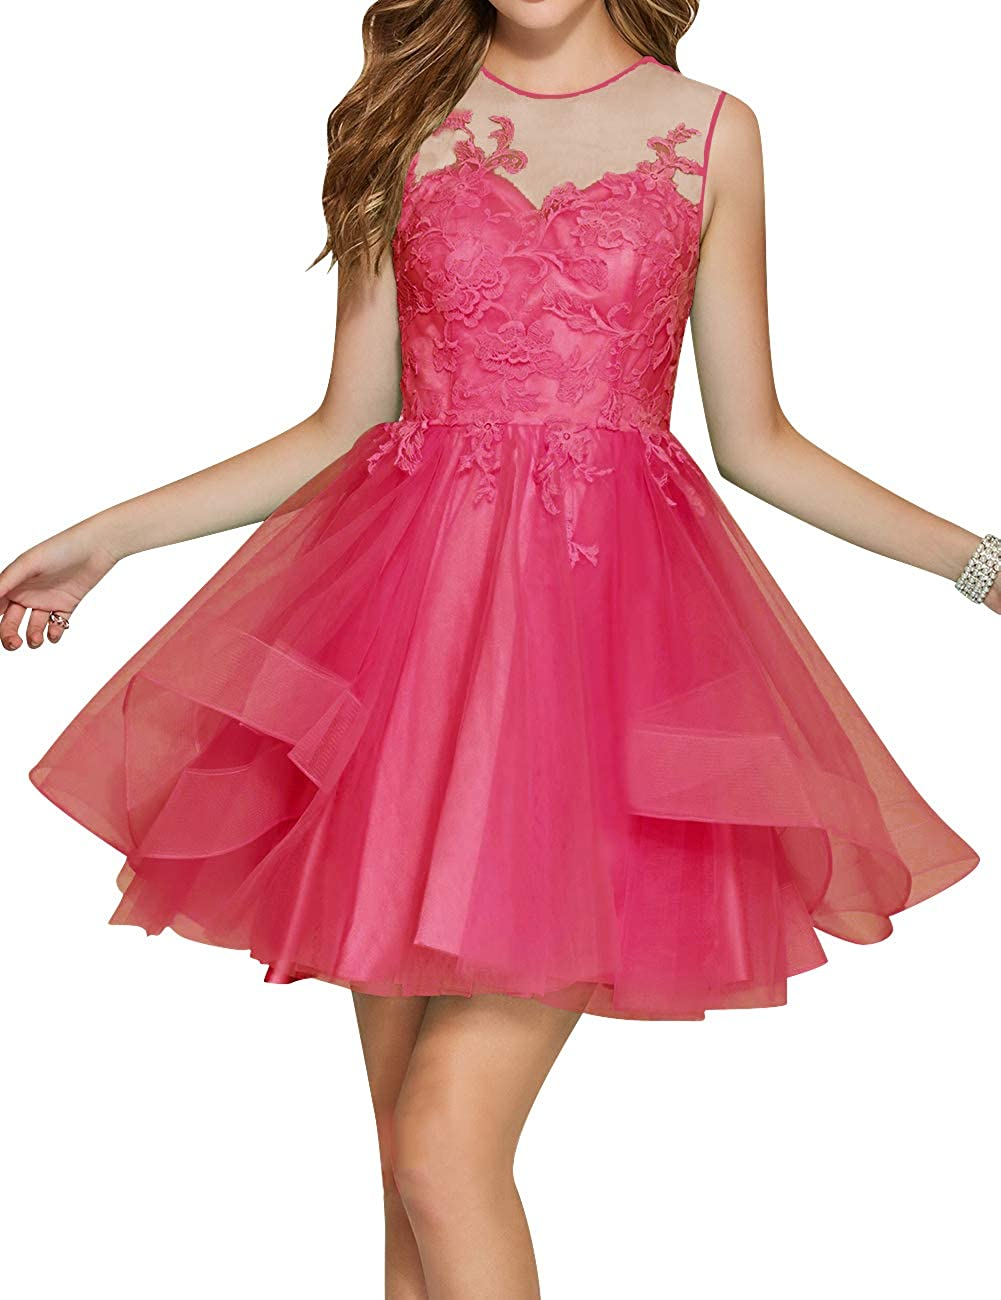 Hot Pink Uther Junior Tulle Prom Homecoming Cocktail Dresses Short Scoop Neck Bridesmaid Dress